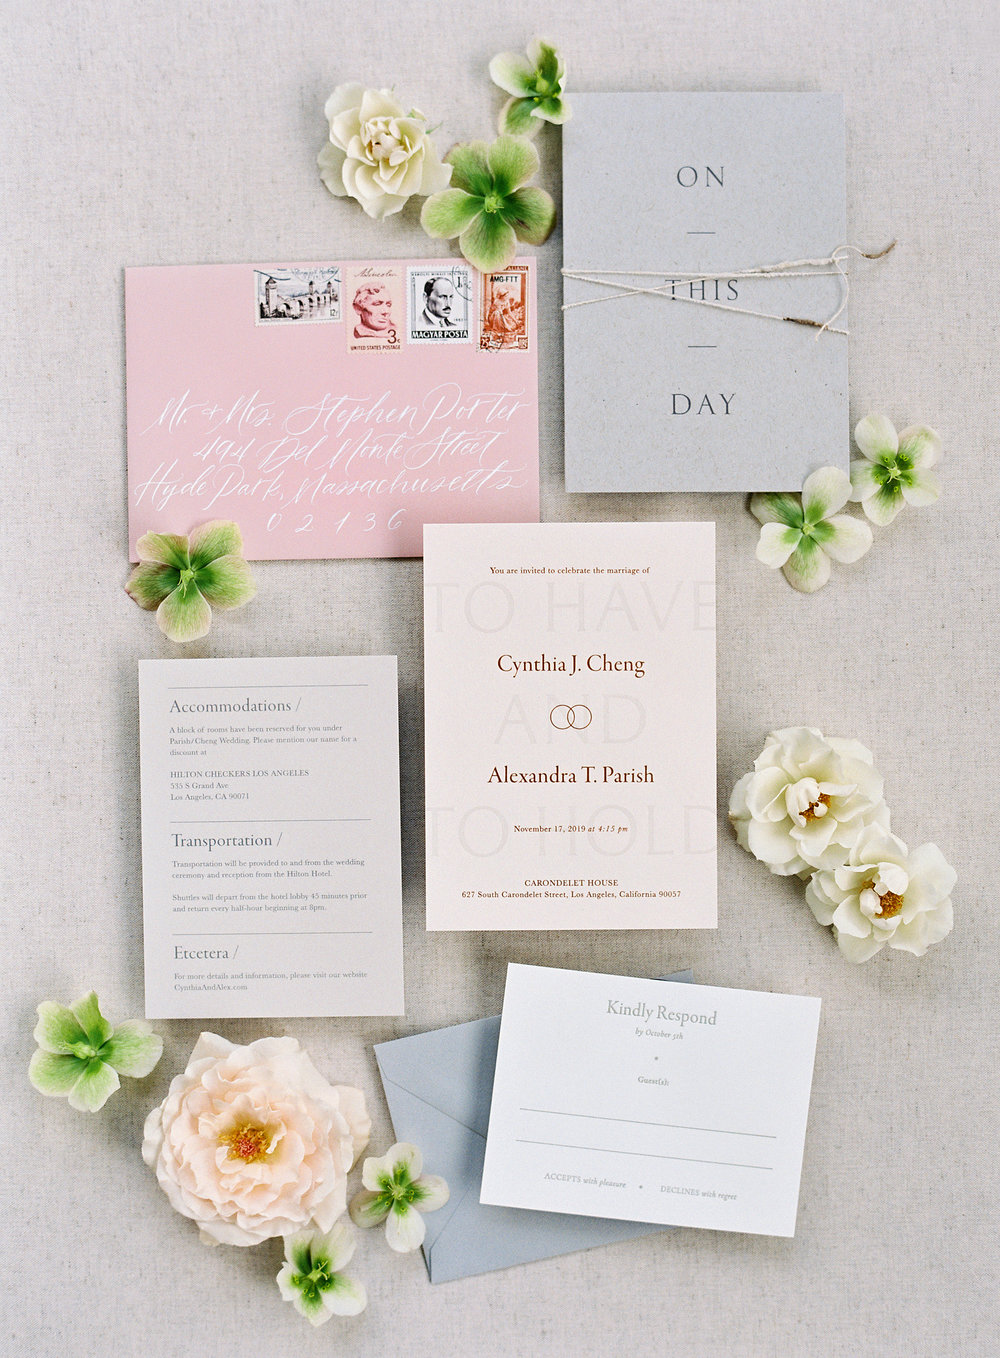 Photo_by_Christine_Donee-Invitation_Suite_by_Owl_Post-Floral_by_Ellamah_1.jpg